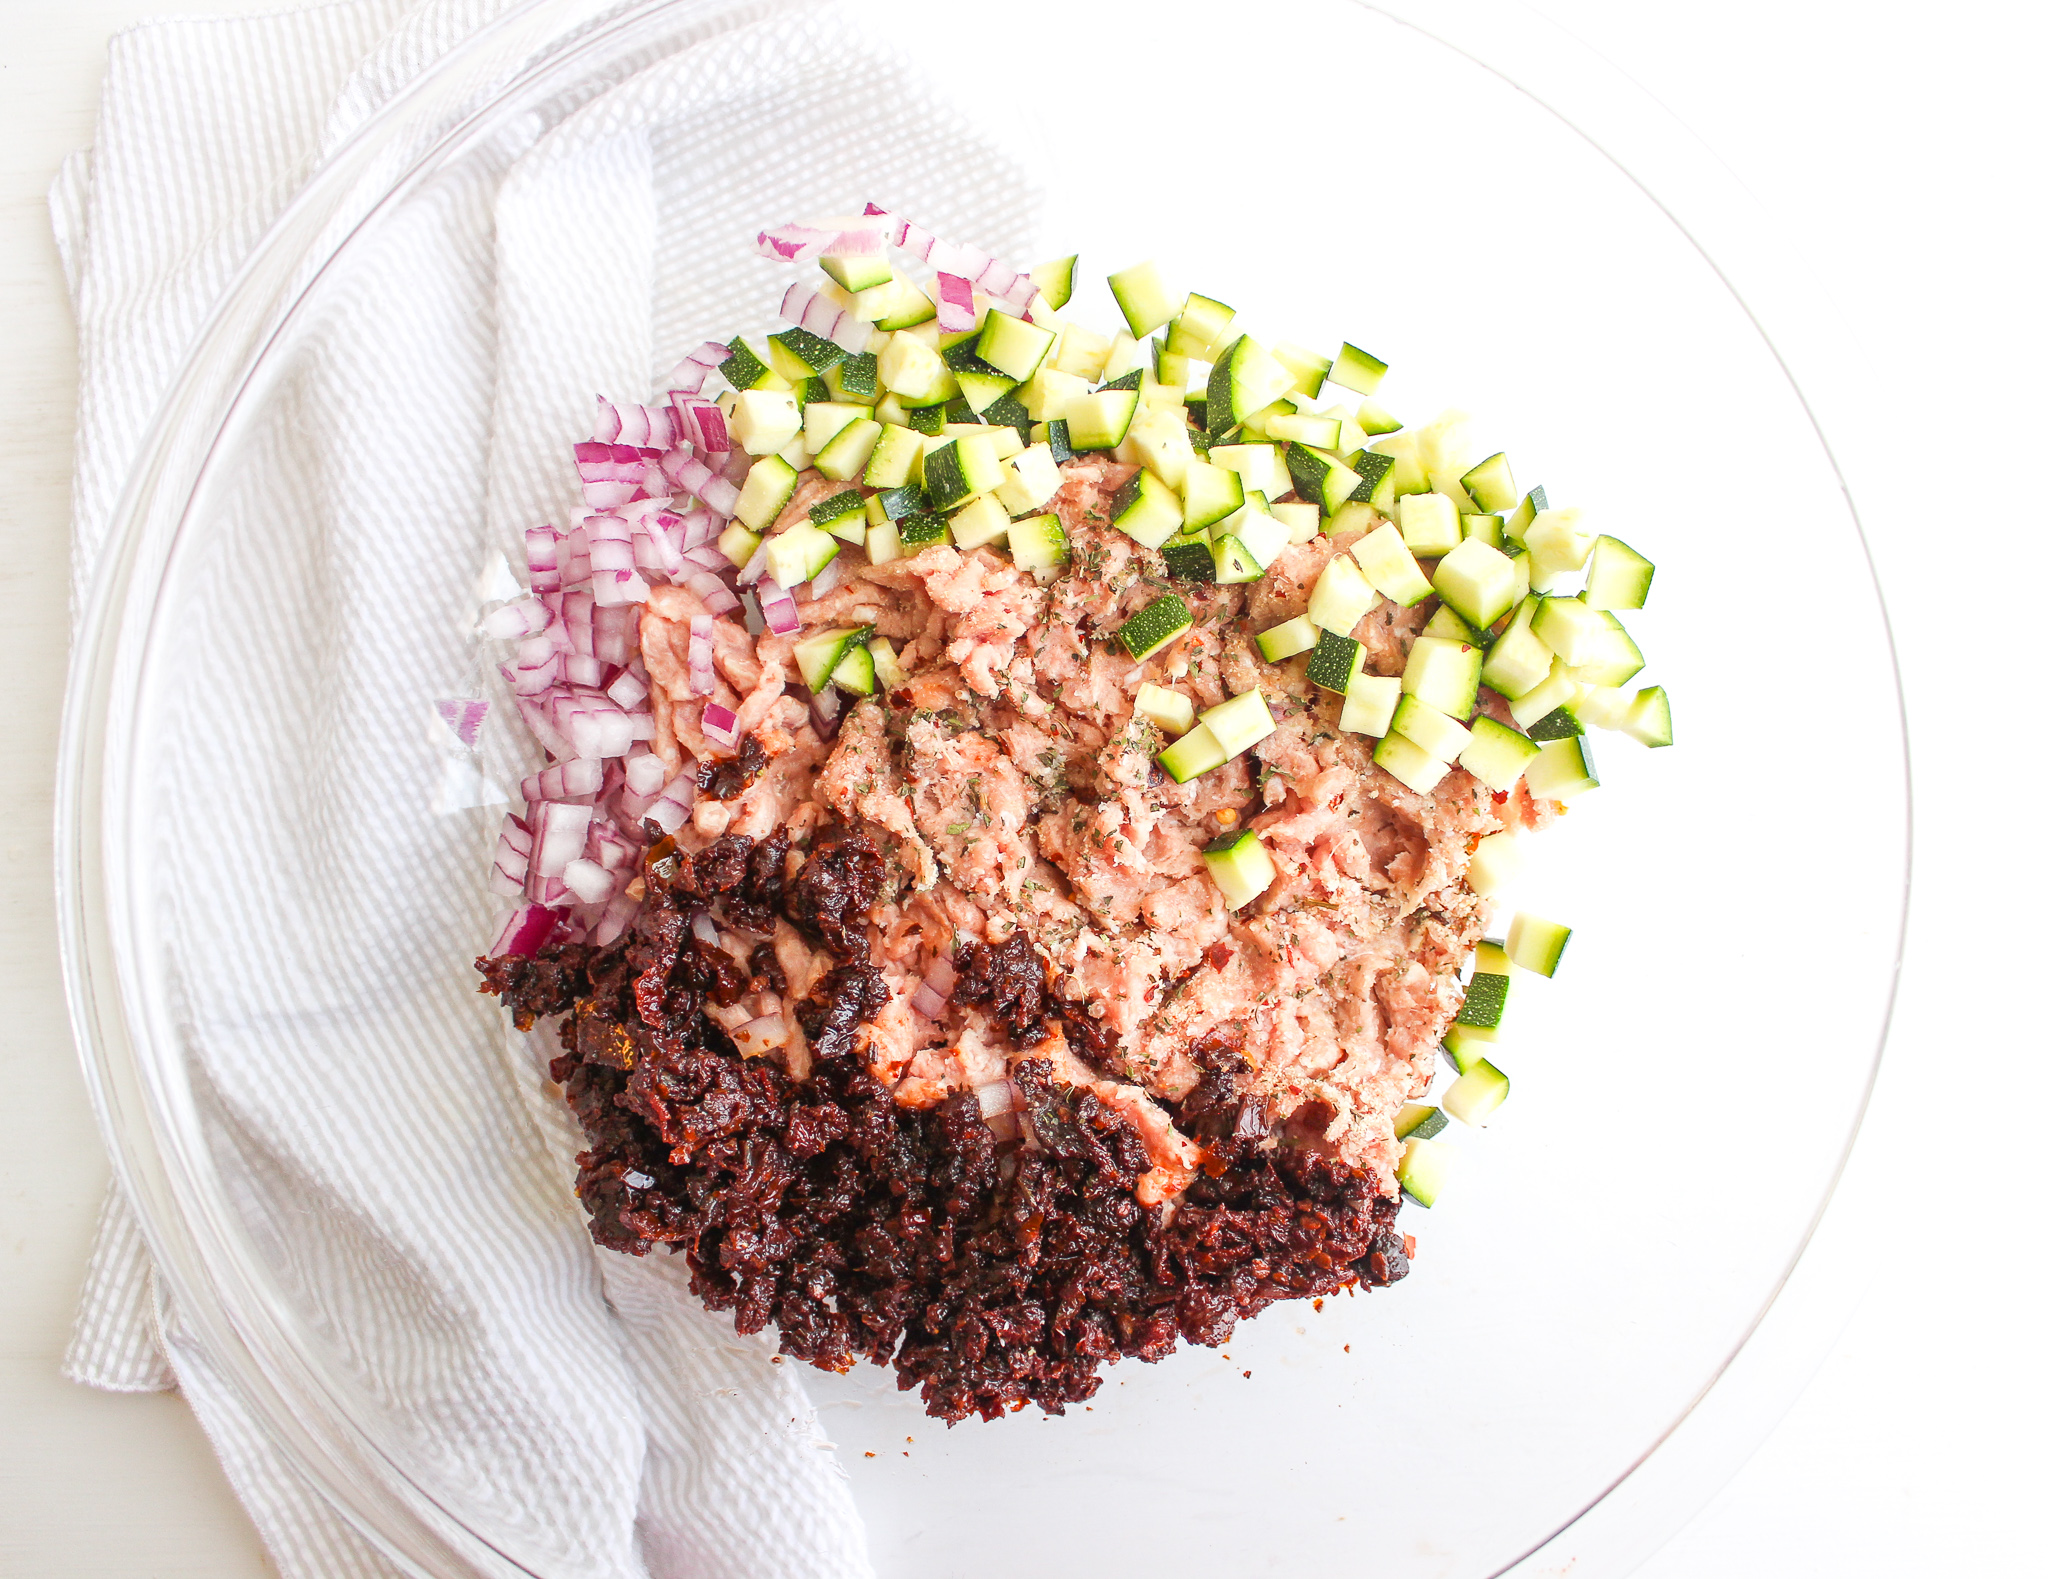 Bowl of ground turkey, diced red onion, diced zucchini, and chopped sun-dried tomatoes